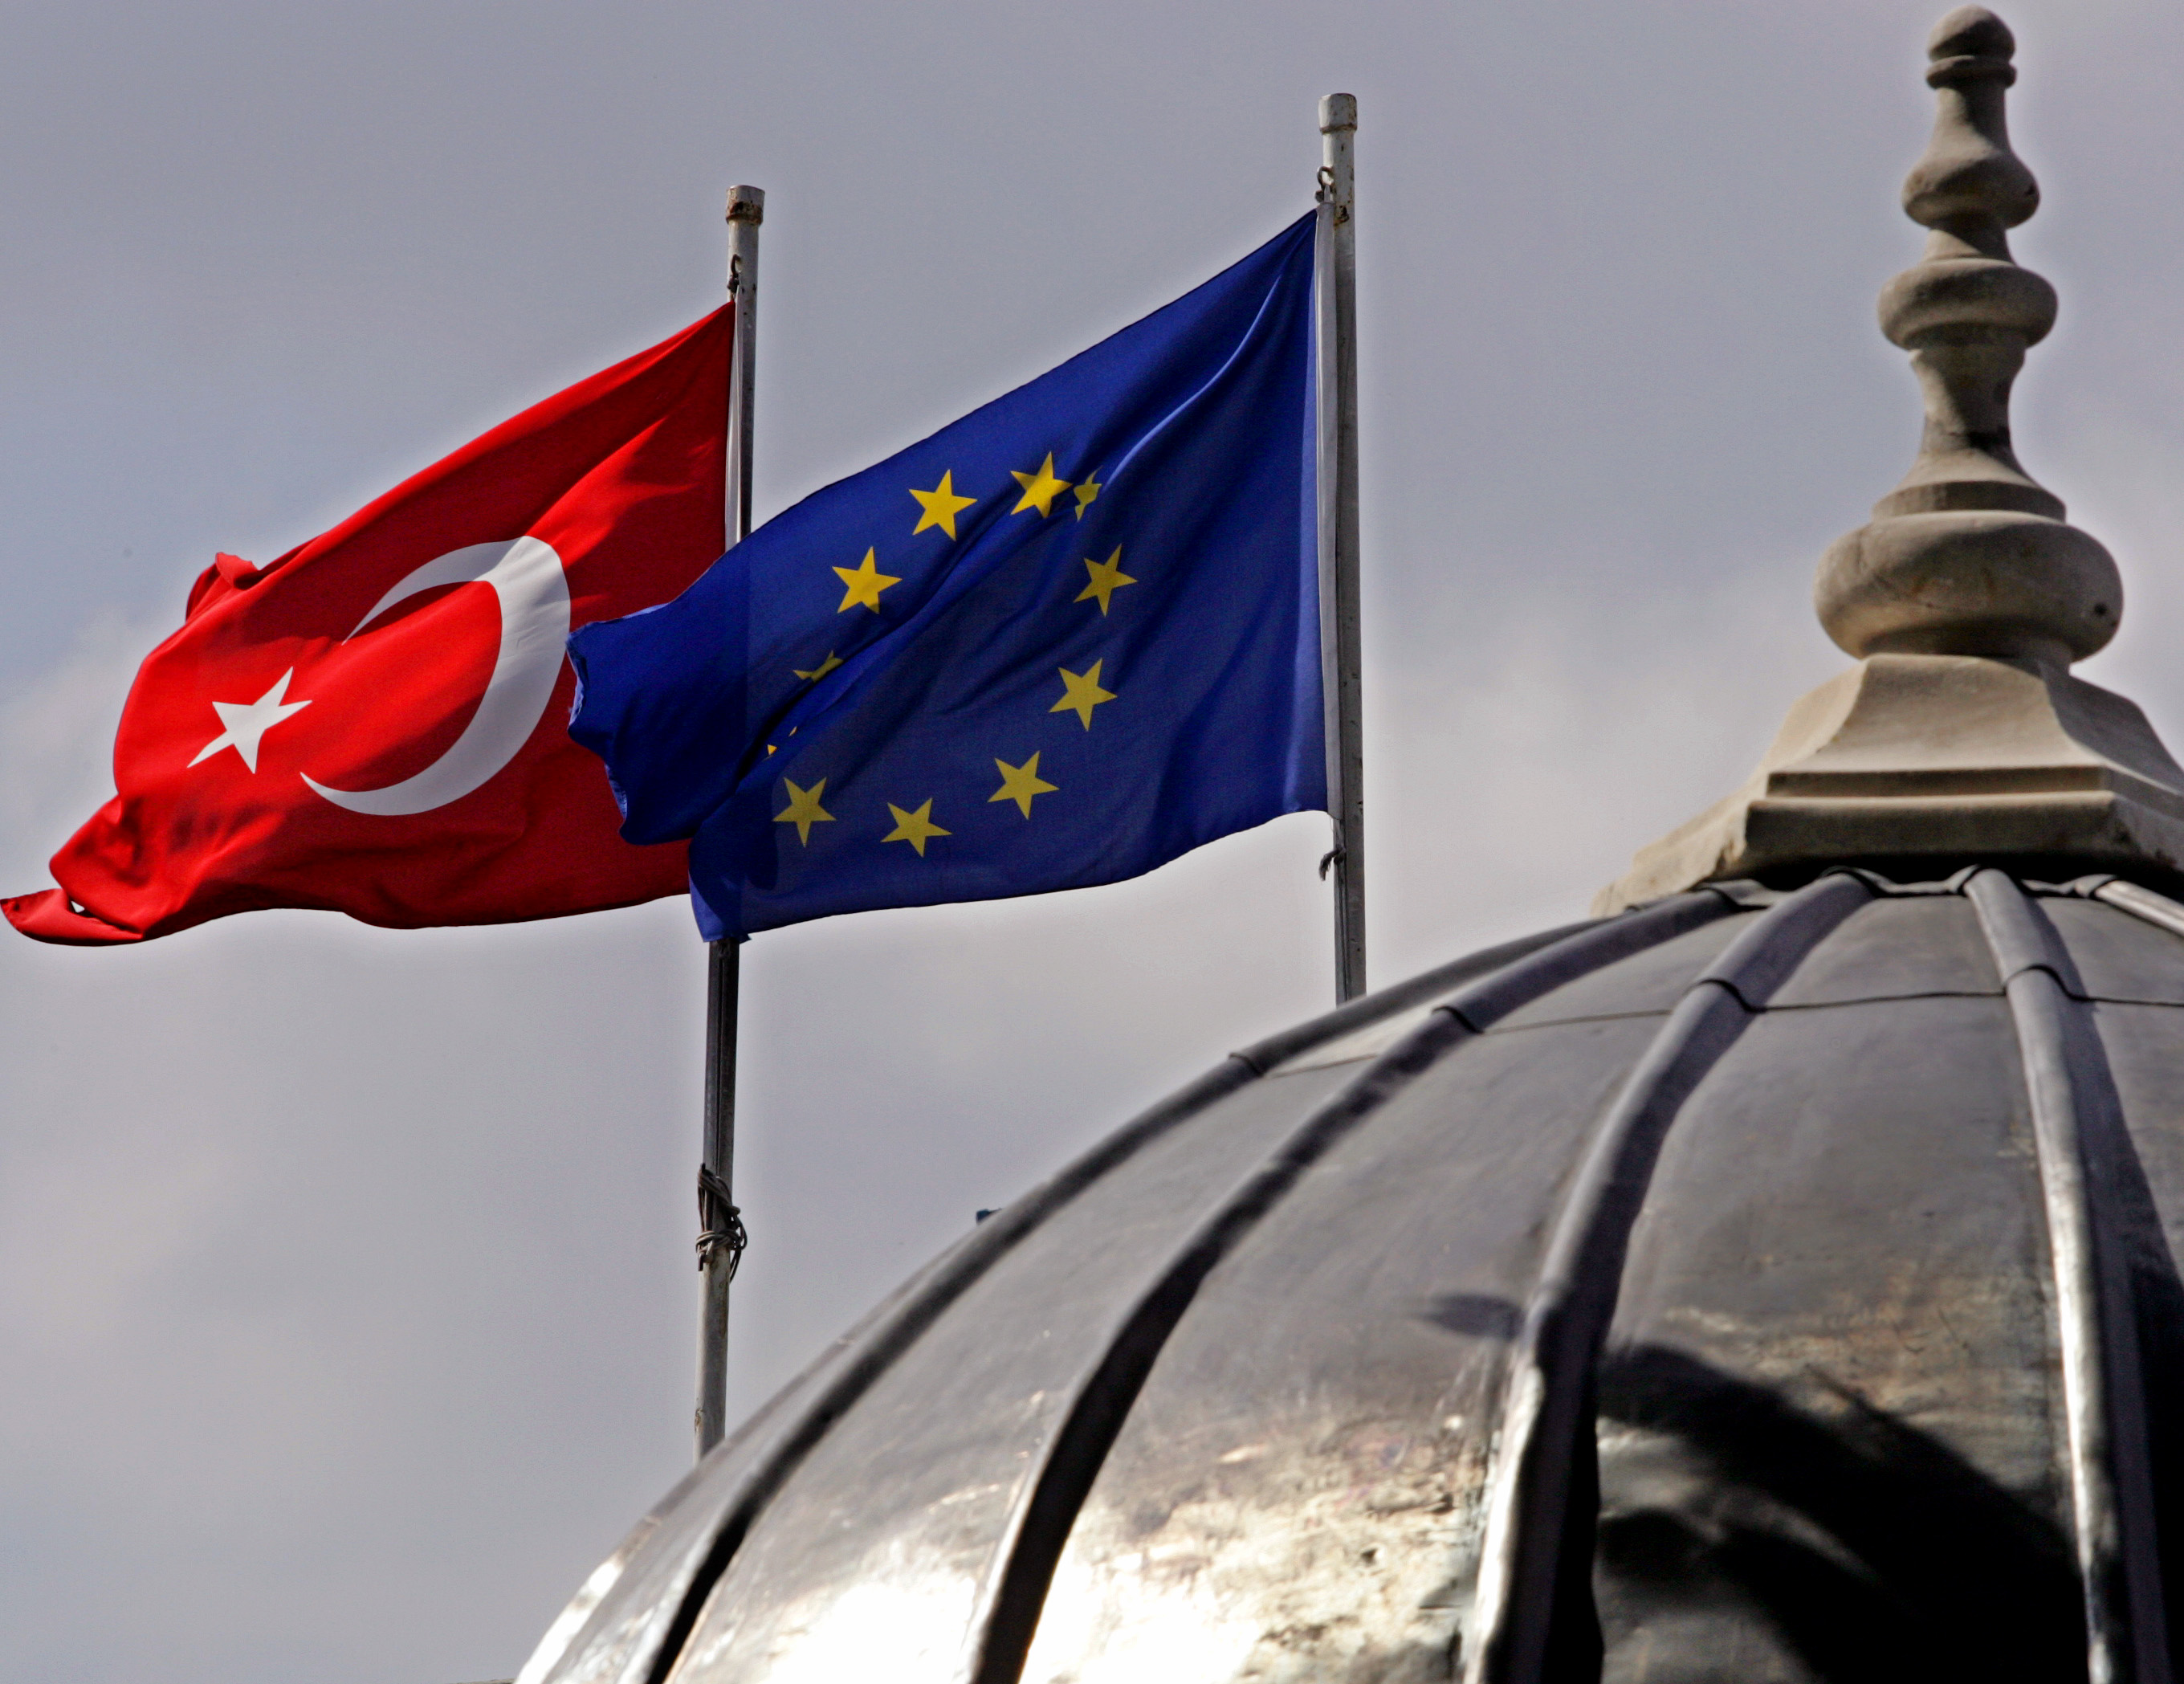 FILE - Flags of Turkey and the European Union are seen over the dome of a mosque in Istanbul, Turkey, Oct. 4, 2005.